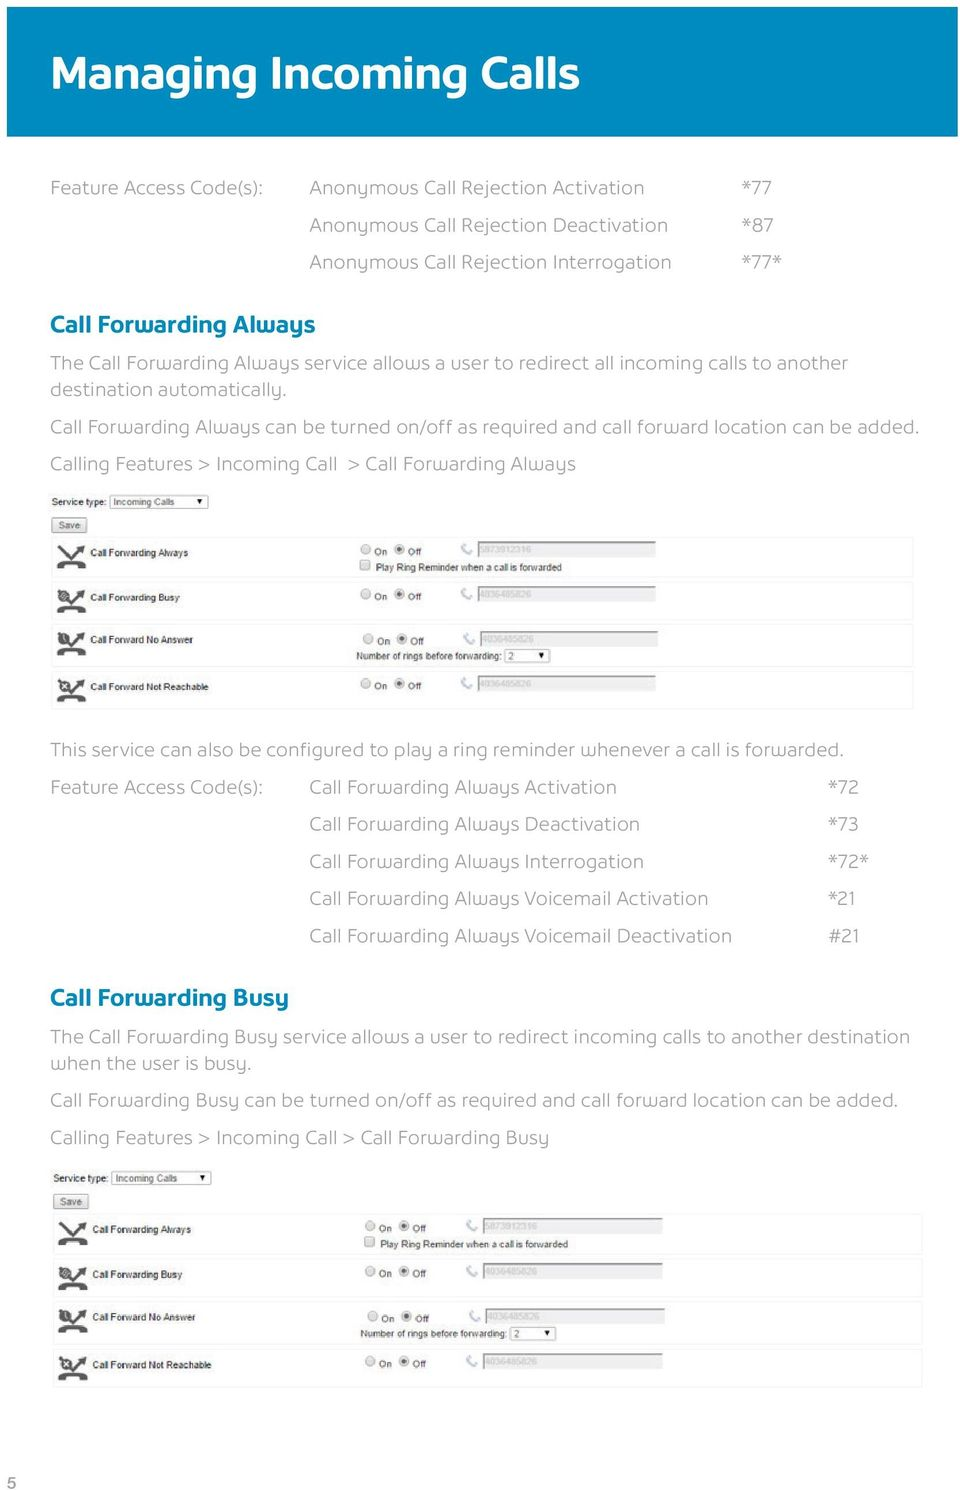 Call Forwarding Always can be turned on/off as required and call forward location can be added.